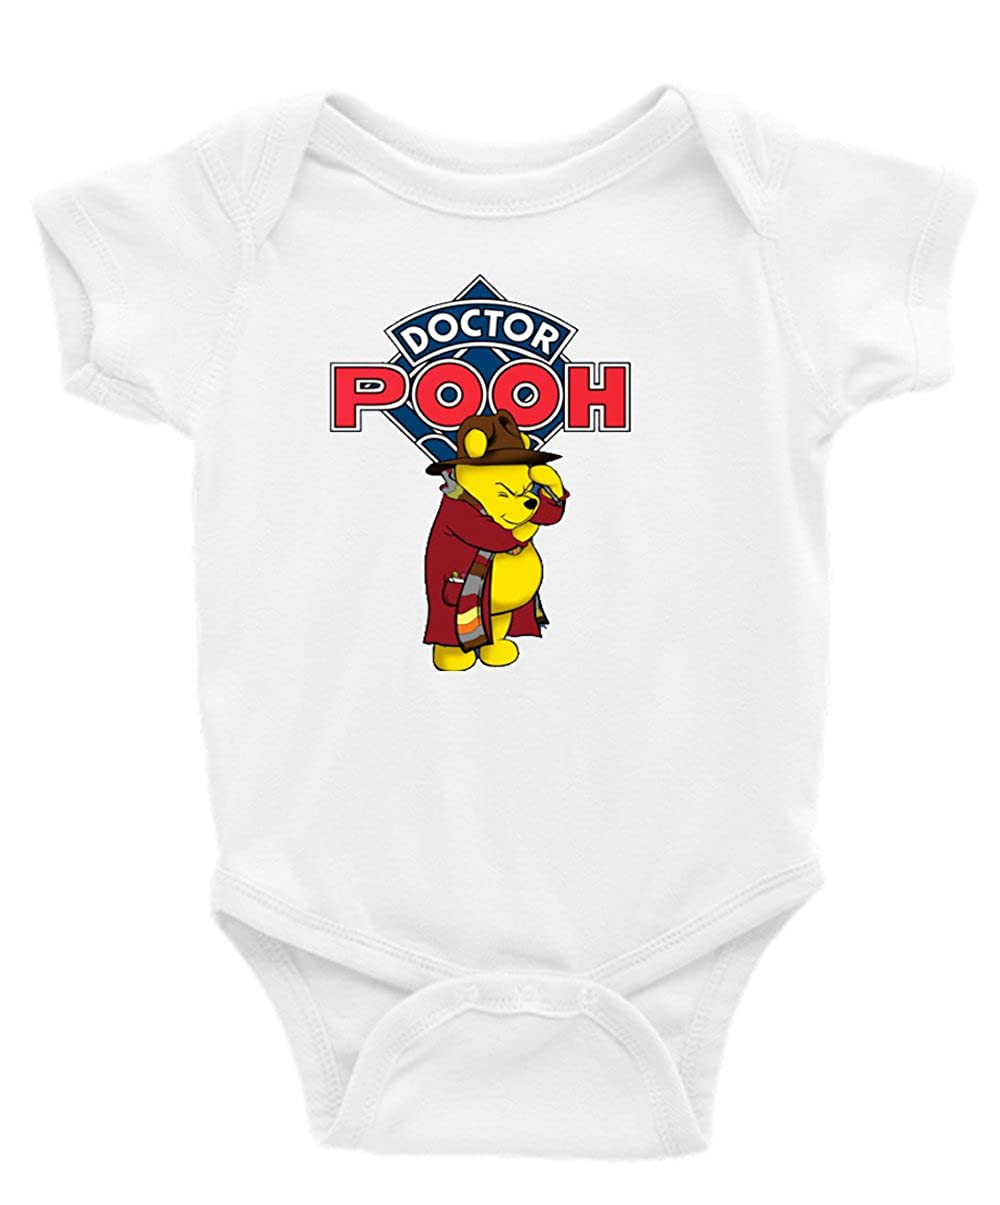 Dr. Pooh Winnie the Pooh Dr. Who Short Sleeve Unisex Onesie